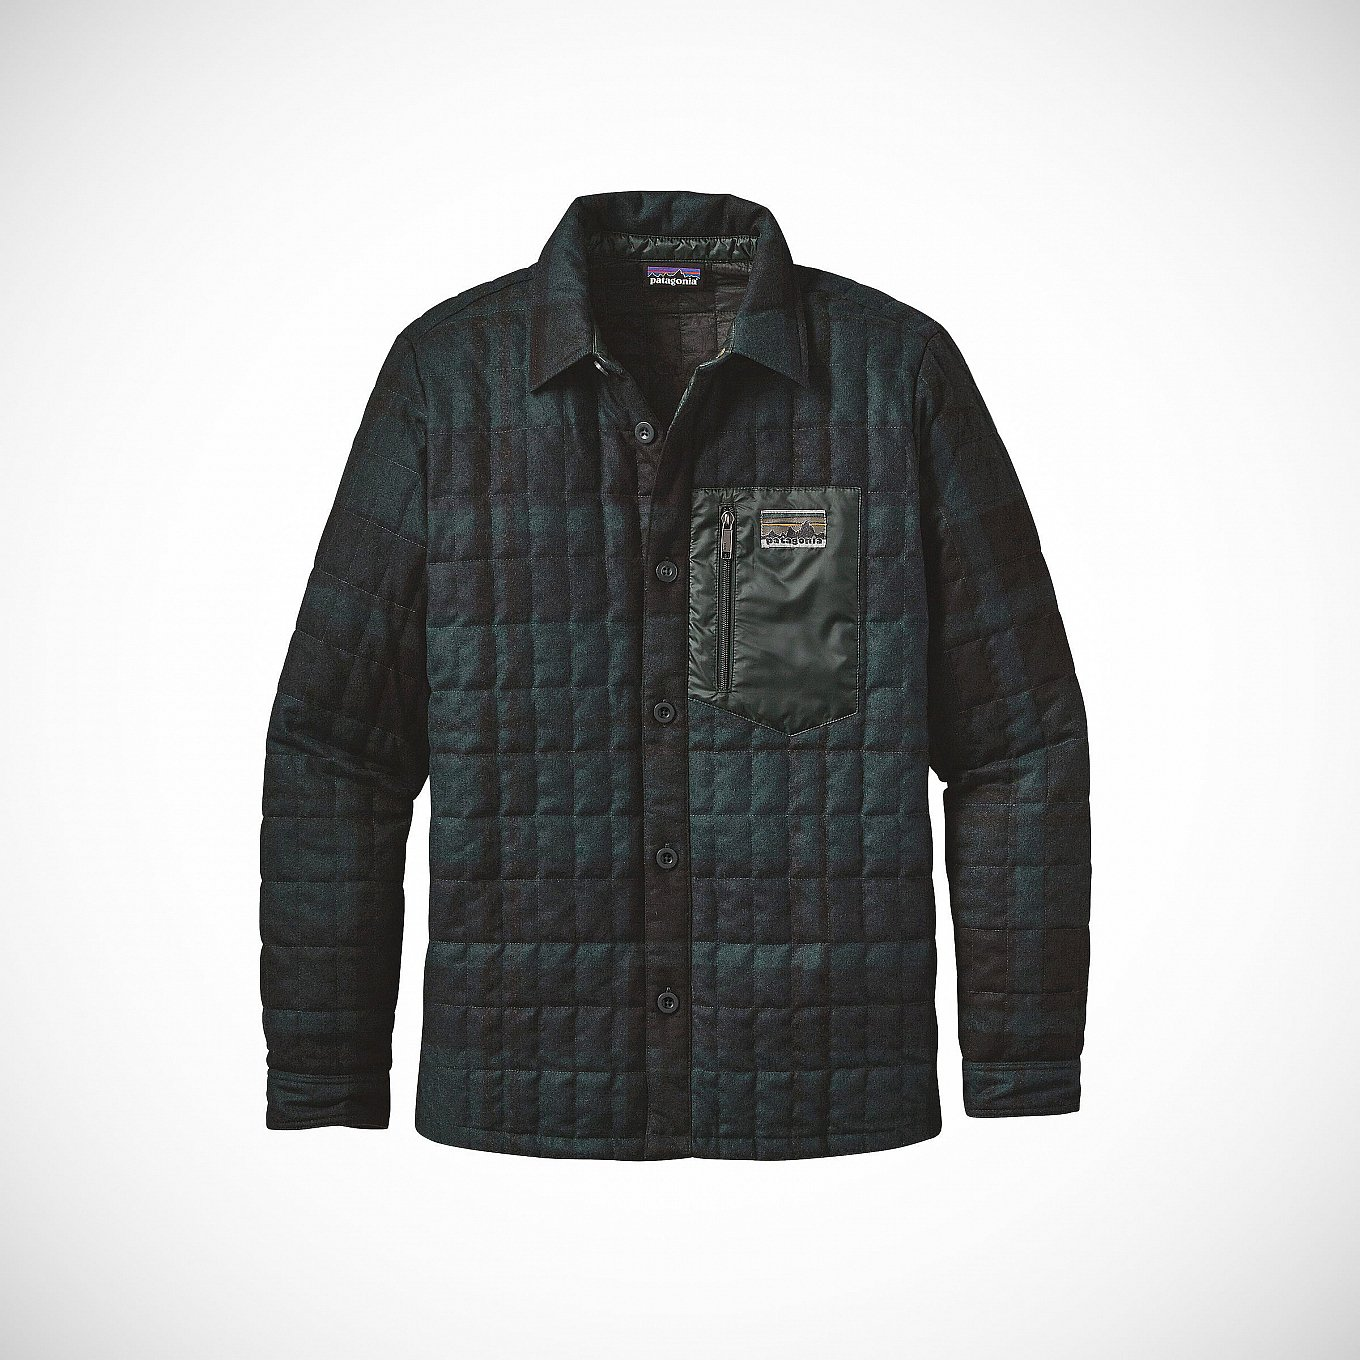 patagonia-re-collection-gessato-4